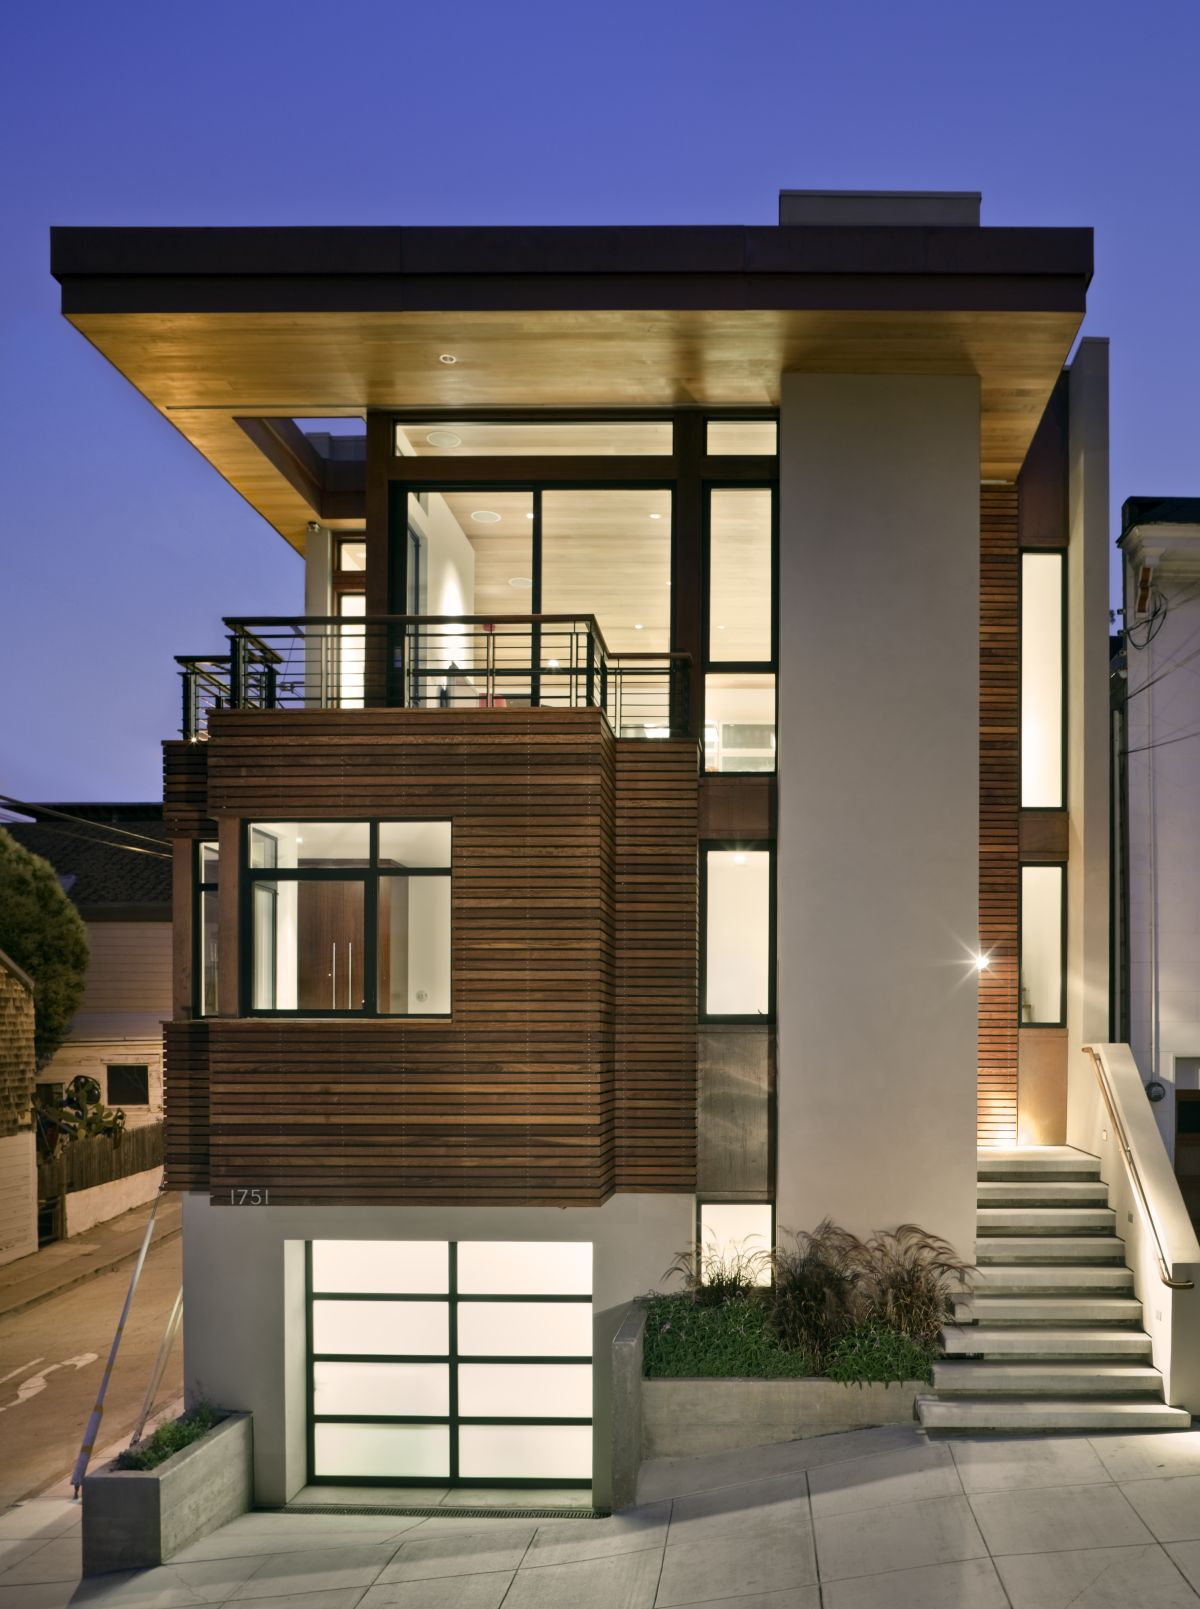 Interior Exterior Plan  Classy and modern exterior theme for large spaces